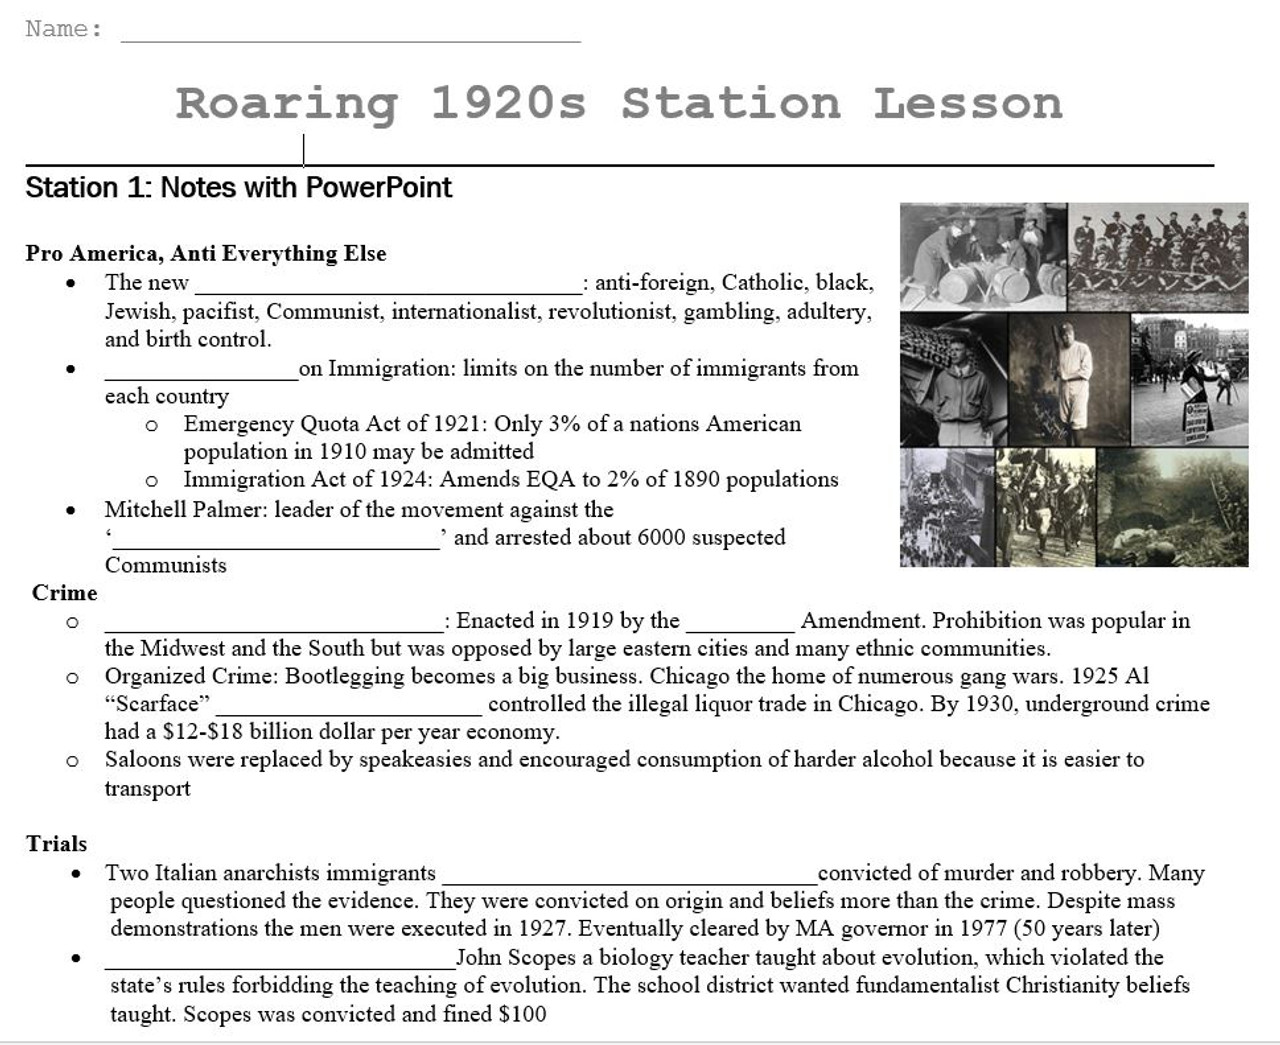 1920s Station Lesson